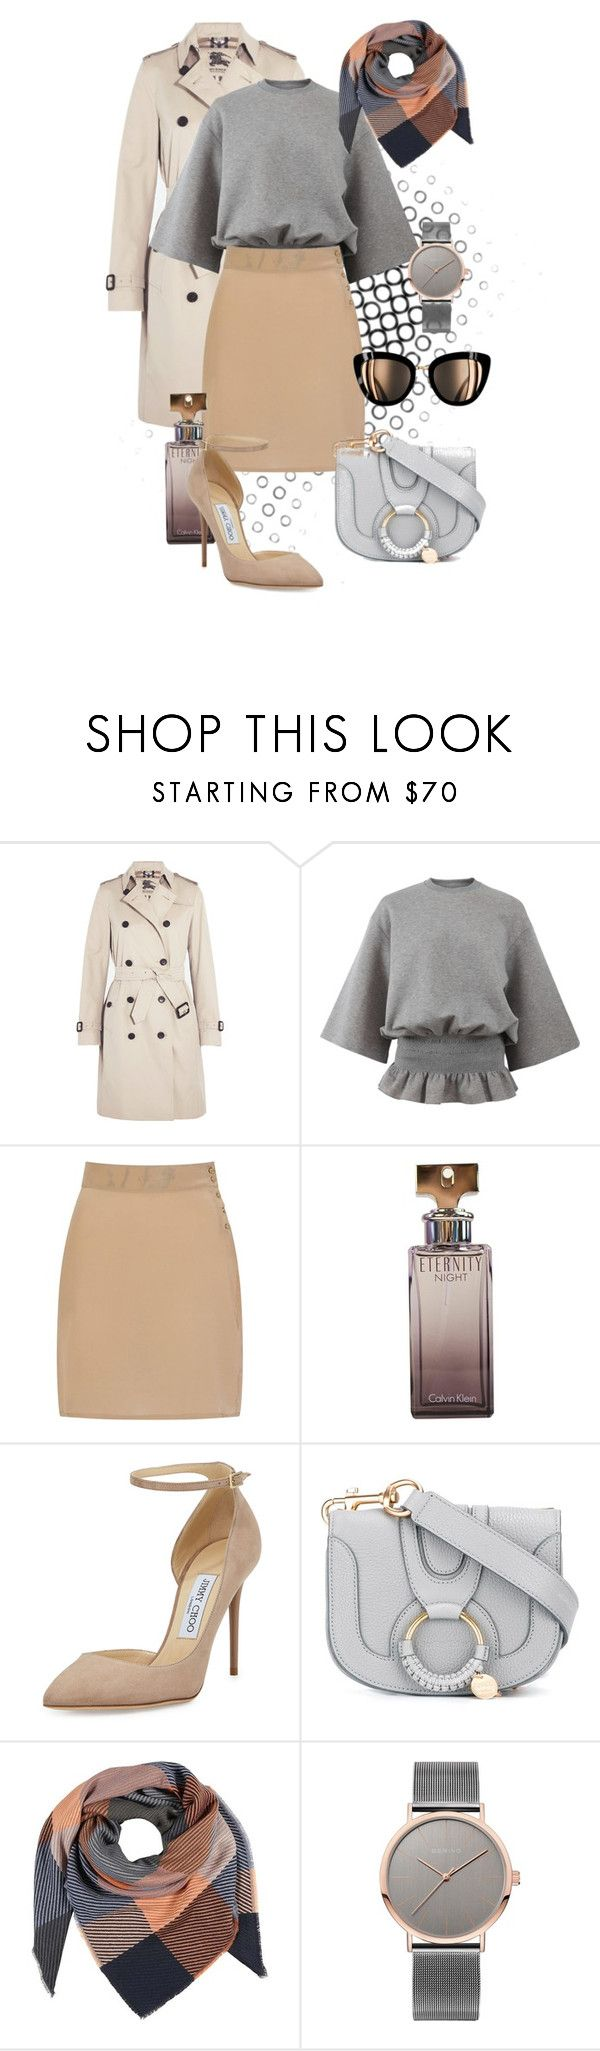 """""""Smart Casual"""" by nansy-393 ❤ liked on Polyvore featuring Burberry, STELLA McCARTNEY, Sophie Cameron Davies, Calvin Klein, Jimmy Choo and See by Chloé"""